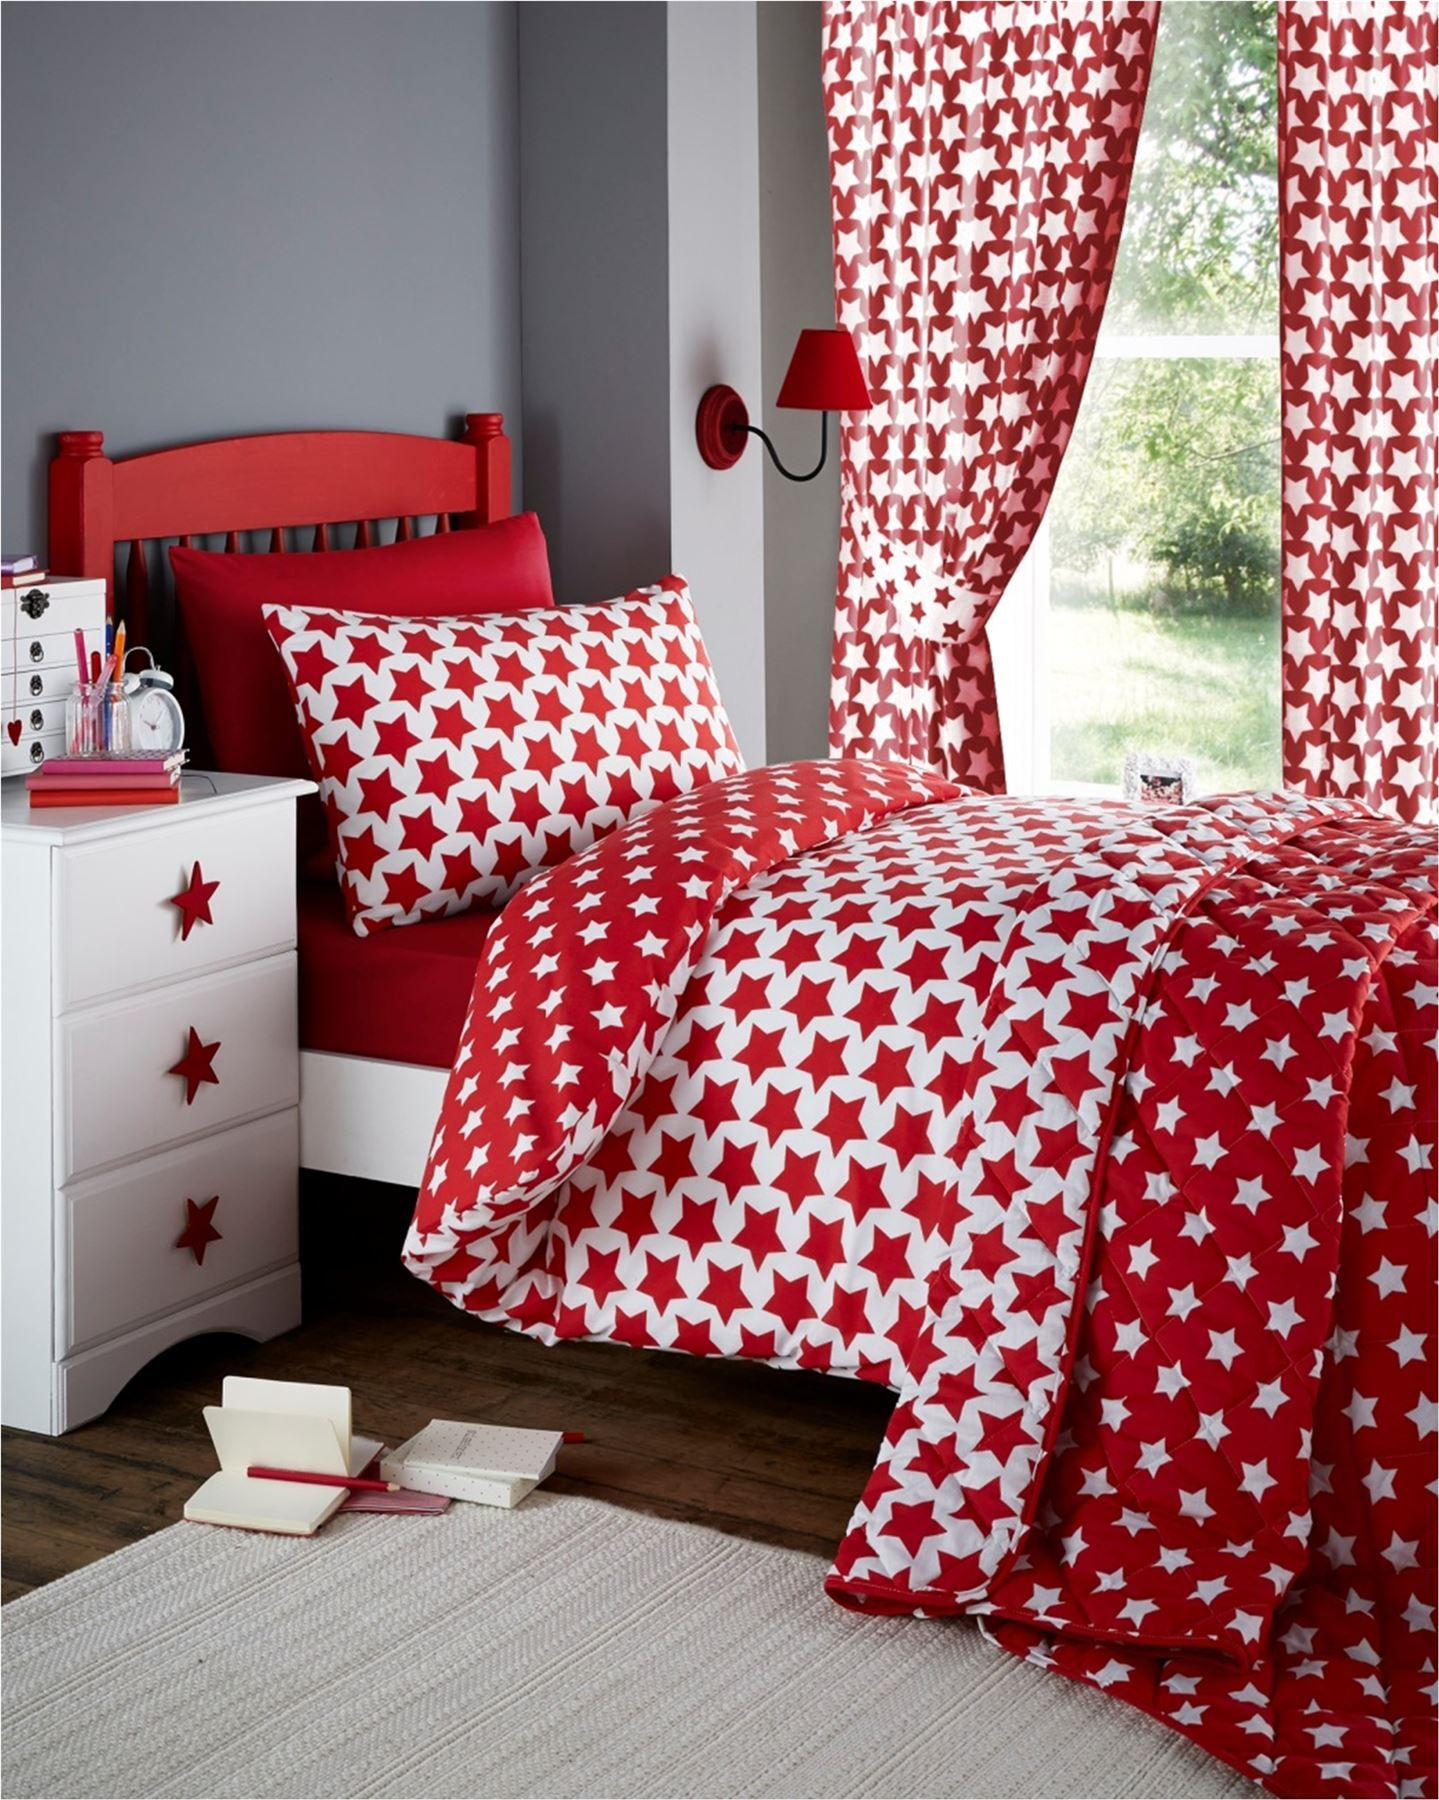 S Childrens Quilt Duvet Cover Pillowcase Bedding Sets Or Matching Curtains